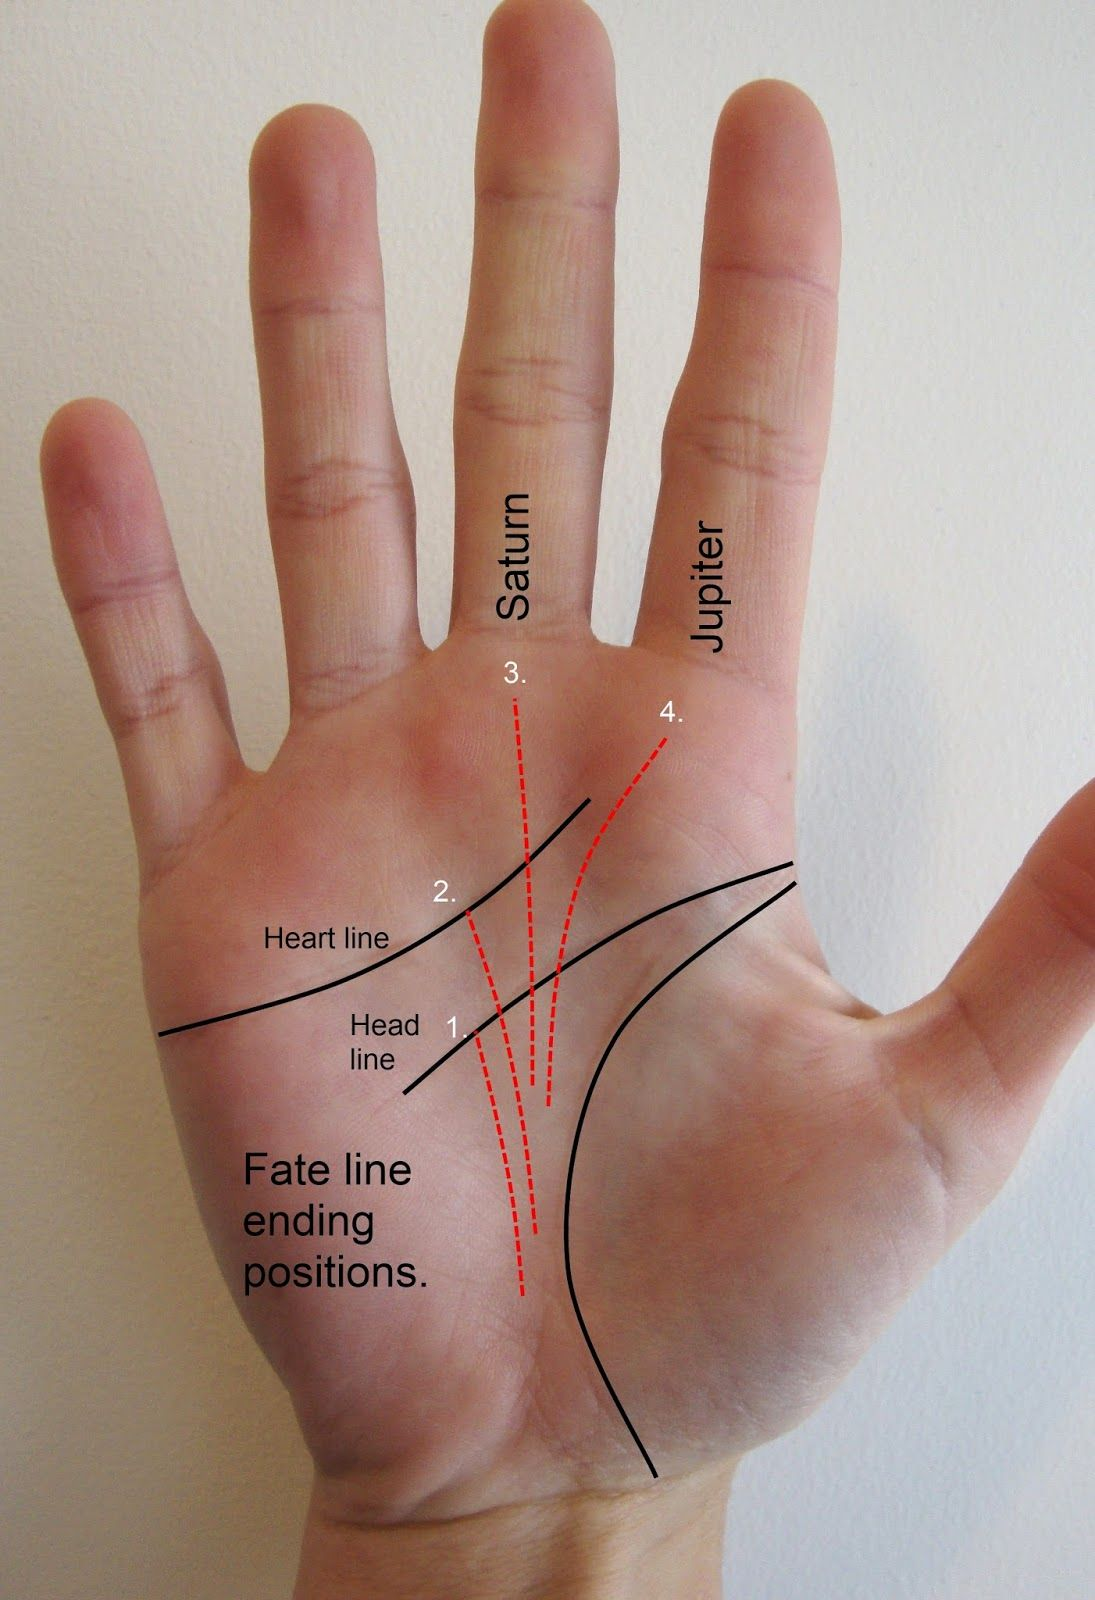 Simian line palmistry tony blair tony bliar - Palmistry Fate Fate Line And The Meanings Of Its Different Signs